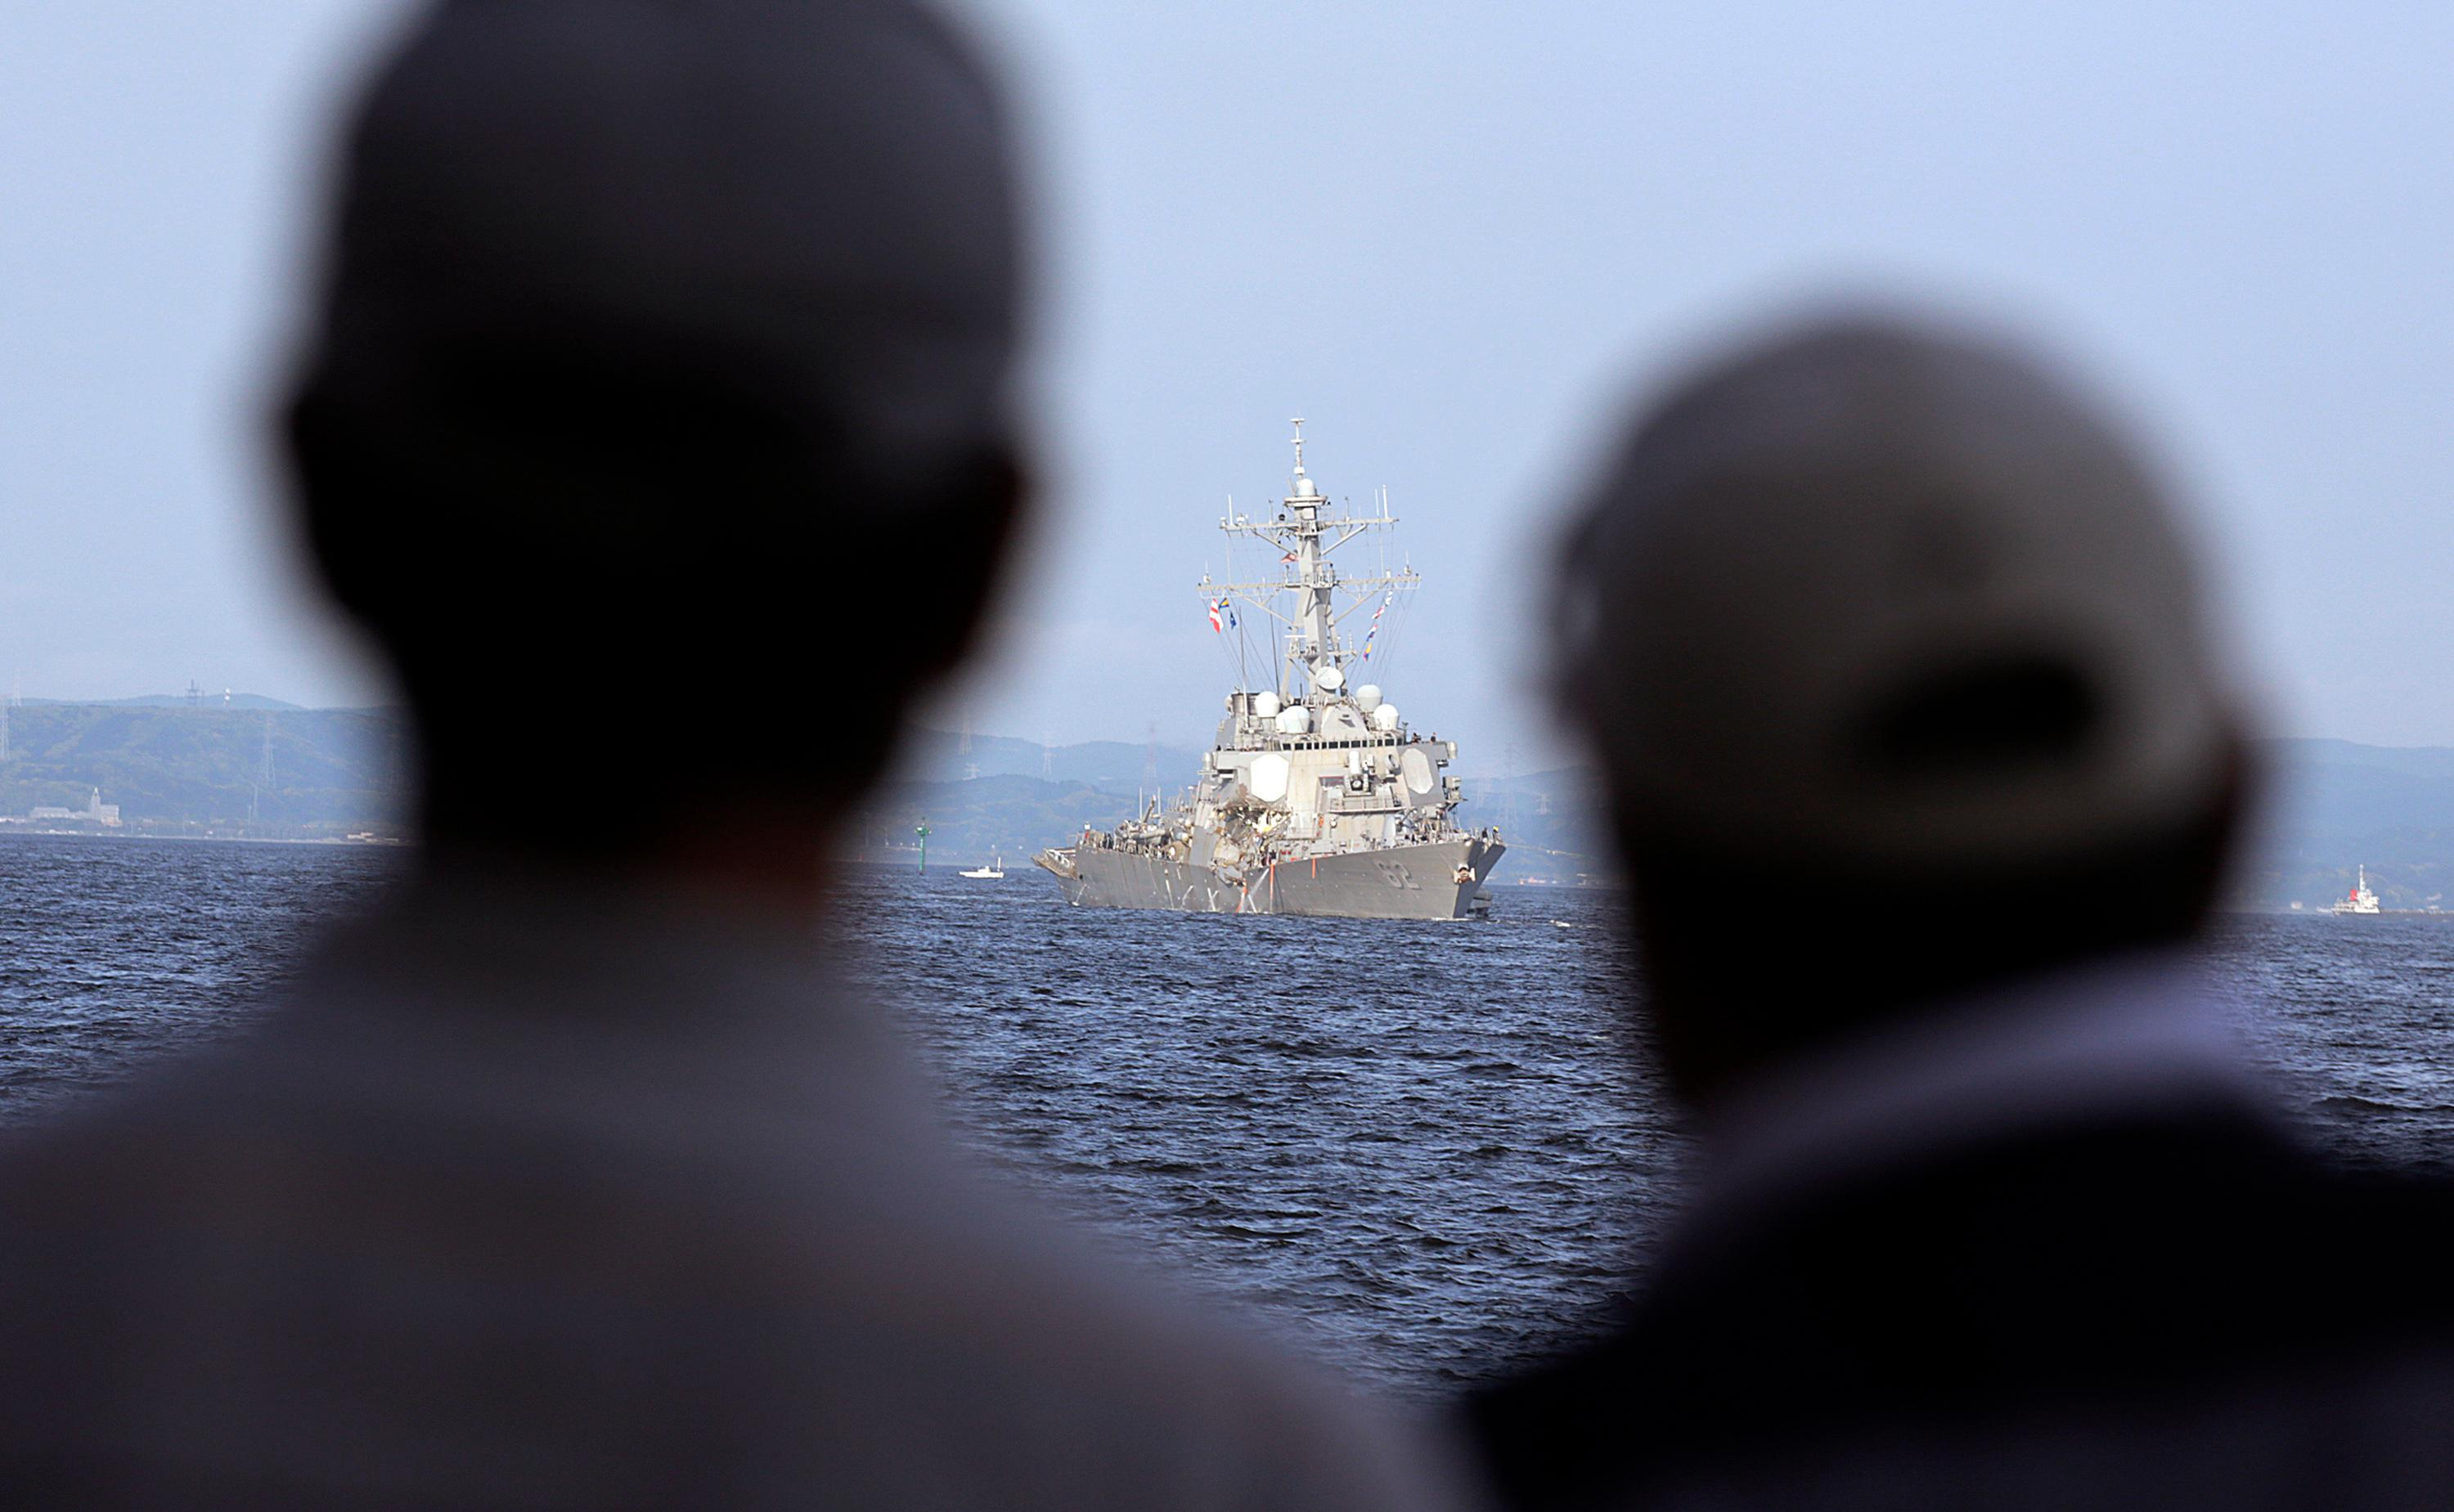 People watch the damaged USS Fitzgerald being towed near the U.S. Naval base in Yokosuka, southwest of Tokyo, after the U.S. destroyer collided with the Philippine-registered container ship ACX Crystal in the waters off the Izu Peninsula Saturday, June 17, 2017. Crew members from the destroyer USS Dewey were helping stabilize the damaged USS Fitzgerald after its collision off the coast of Japan before dawn Saturday, leaving seven sailors missing and at least three injured. (AP Photo/Eugene Hoshiko)